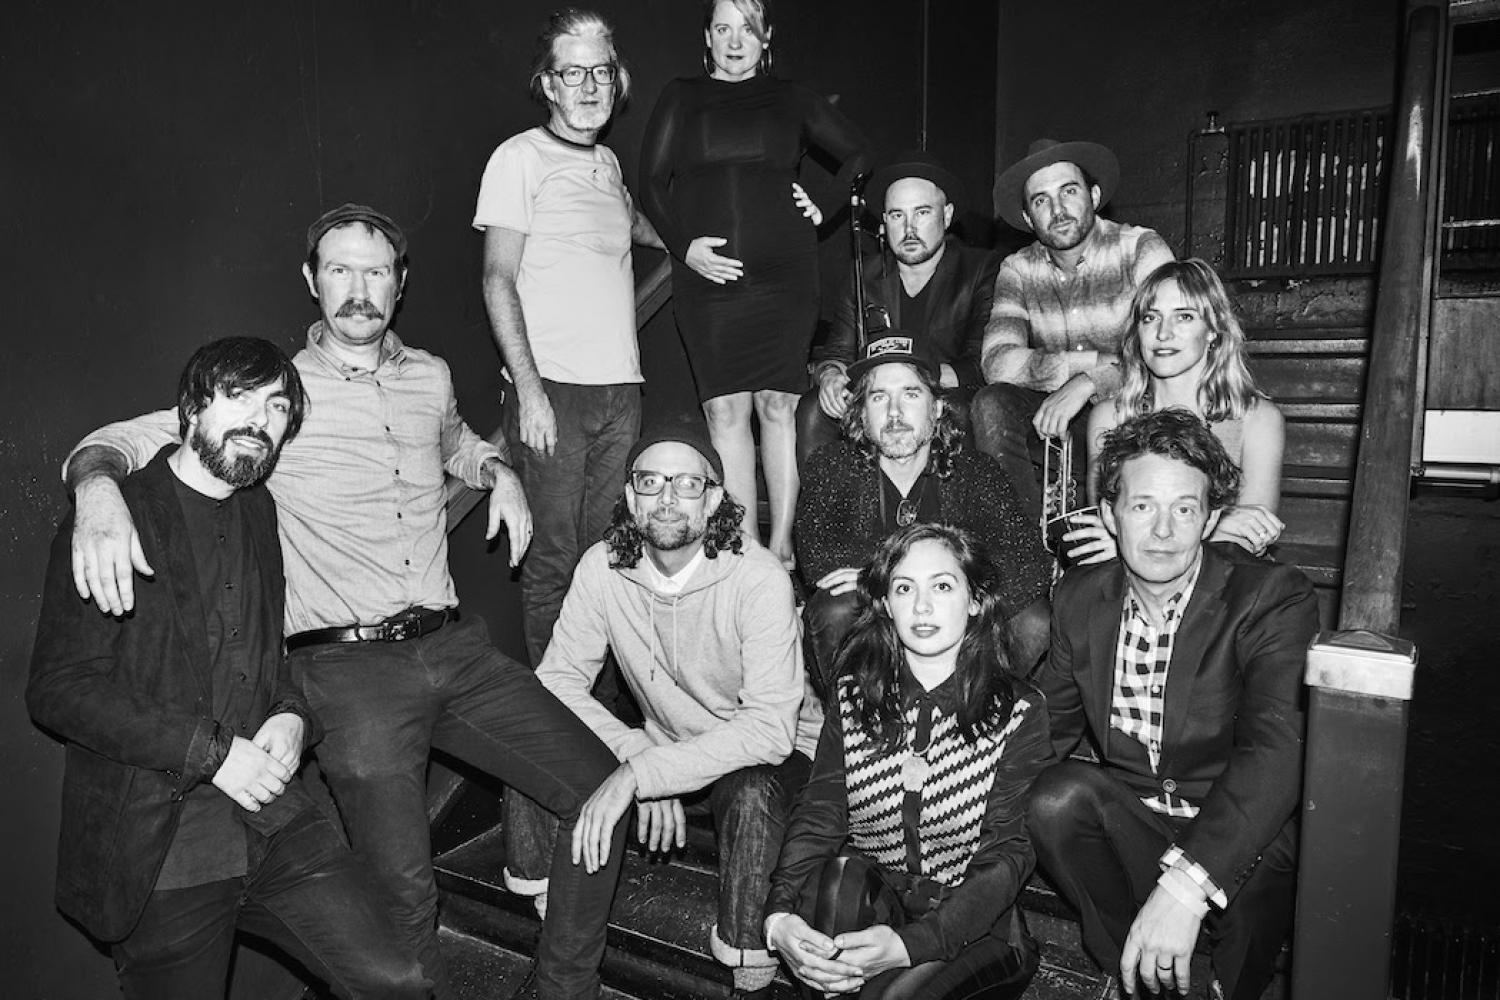 Broken Social Scene - HUG OF THUNDERBroken Social Scene, the canadian SUPER GROUP, dropped their first album in 7 years. Favorite tracks: Stay Happy, Hug of Thunder, Halfway Home, Please Take Me With You